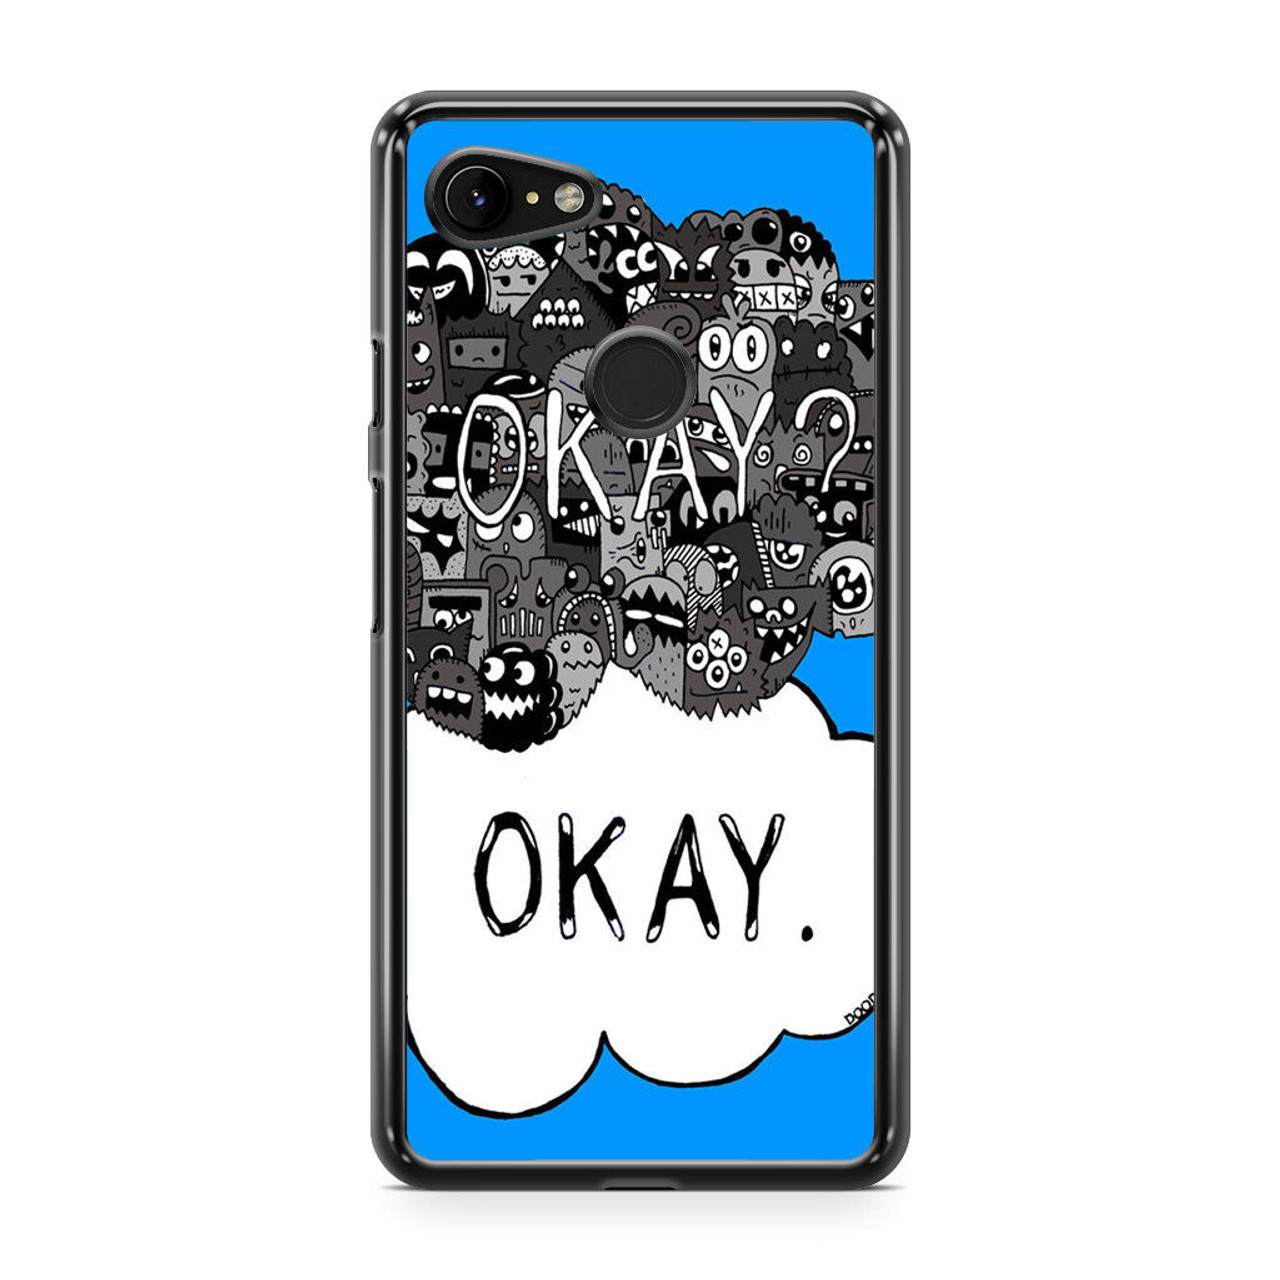 The Fault in Our Stars Okay Google Pixel 3 Case